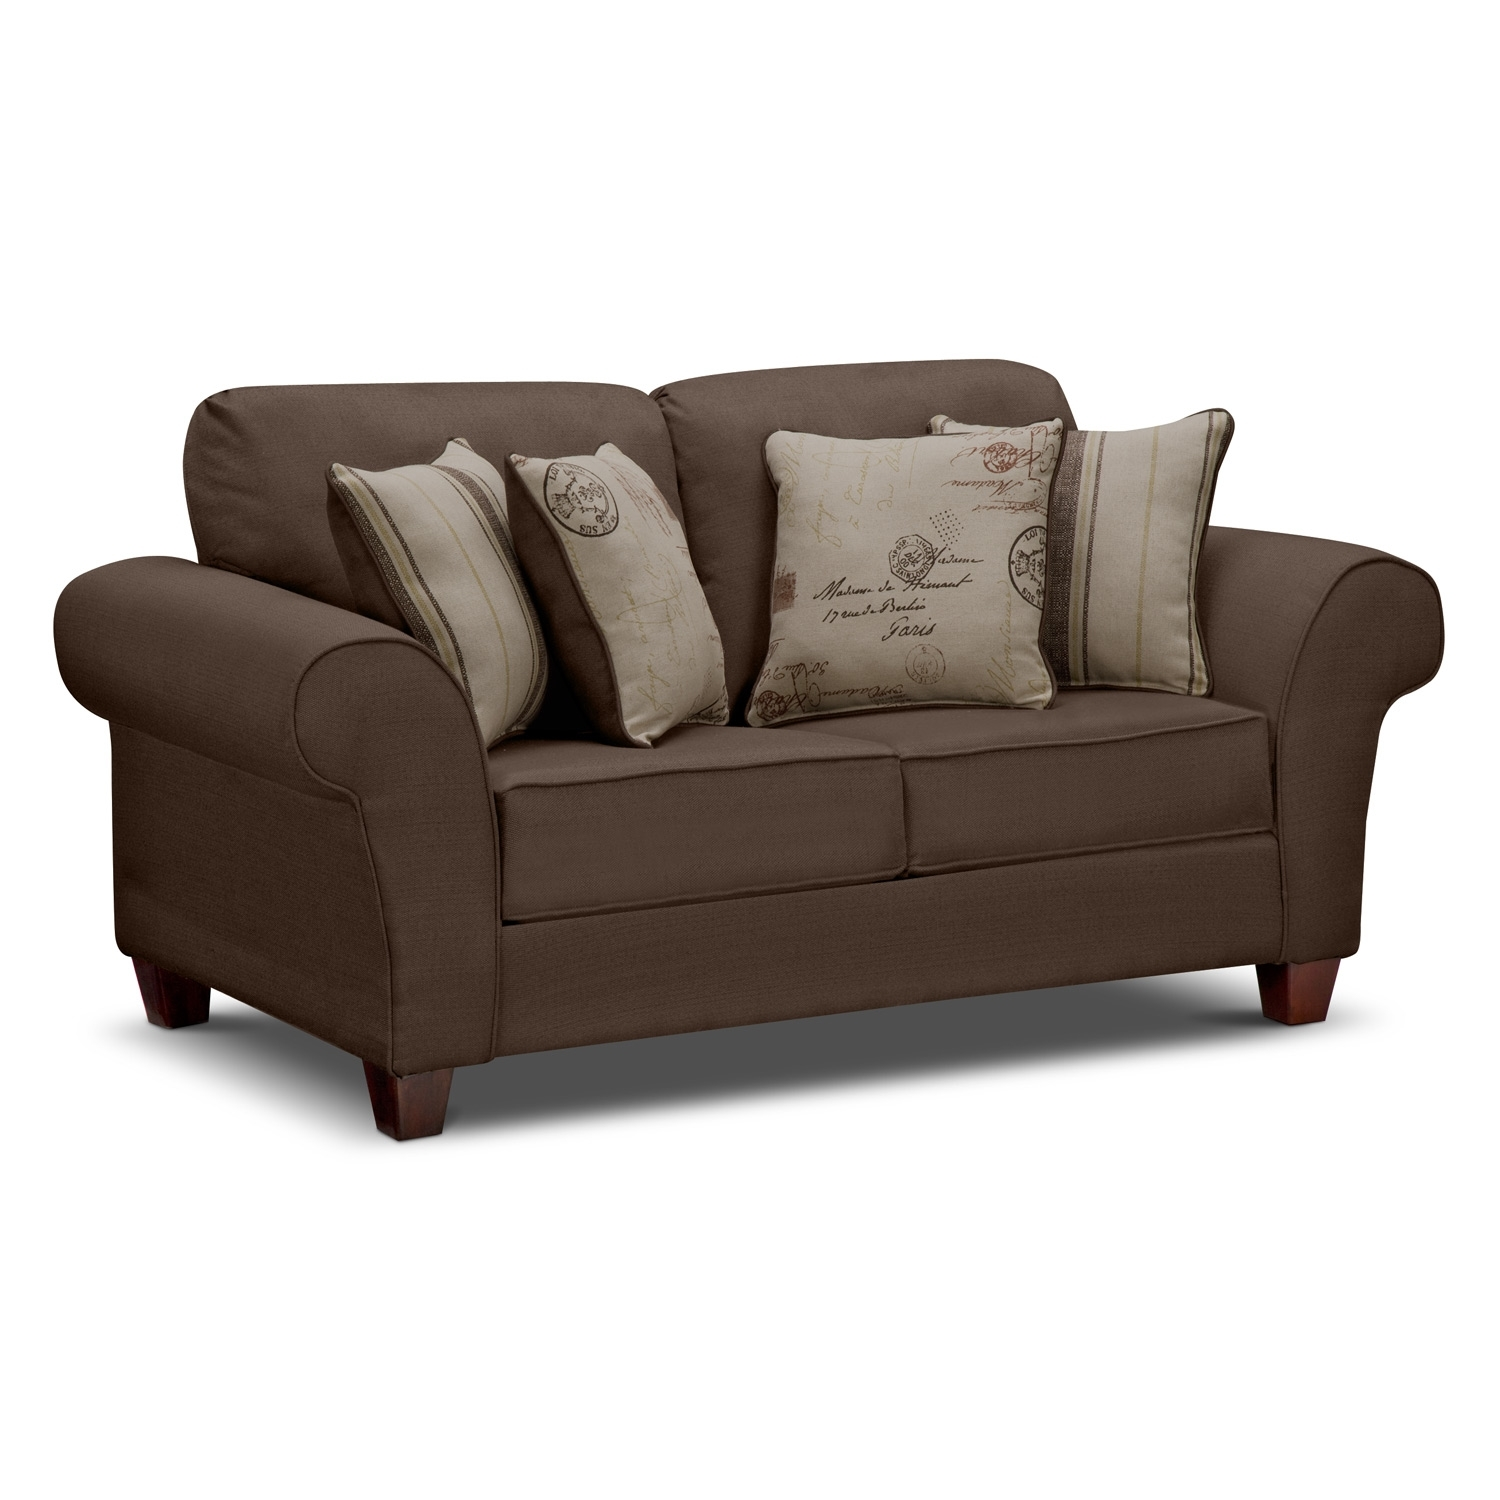 Sofas Center Elijah Sofas And Chairs Range Finline Furniture Within Small Sofas And Chairs (Image 11 of 15)